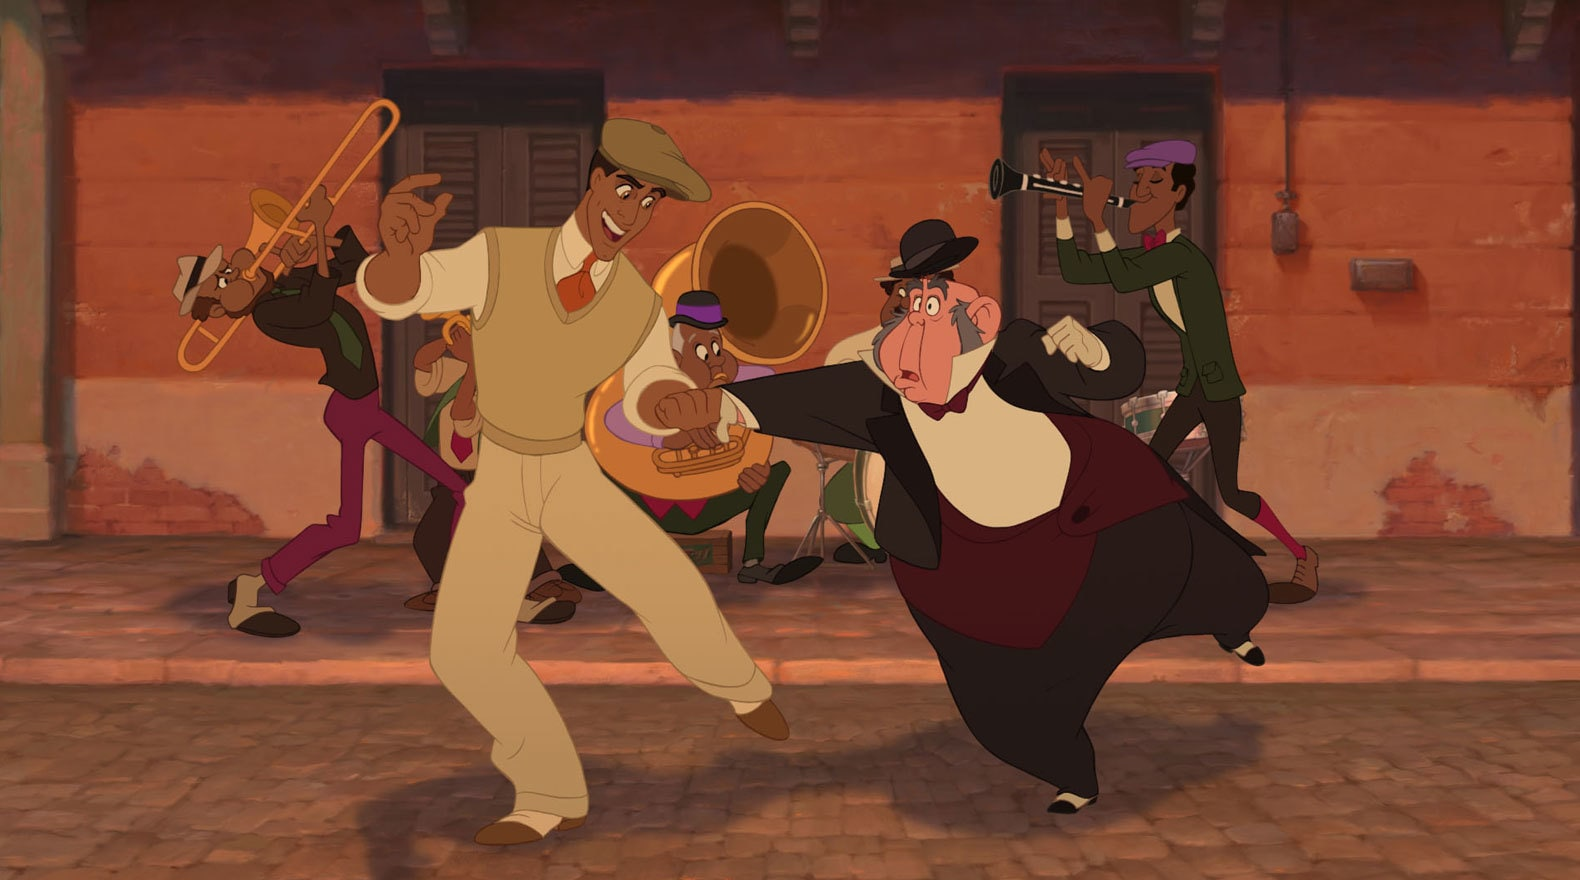 Prince Naveen and Larence dance up a storm.